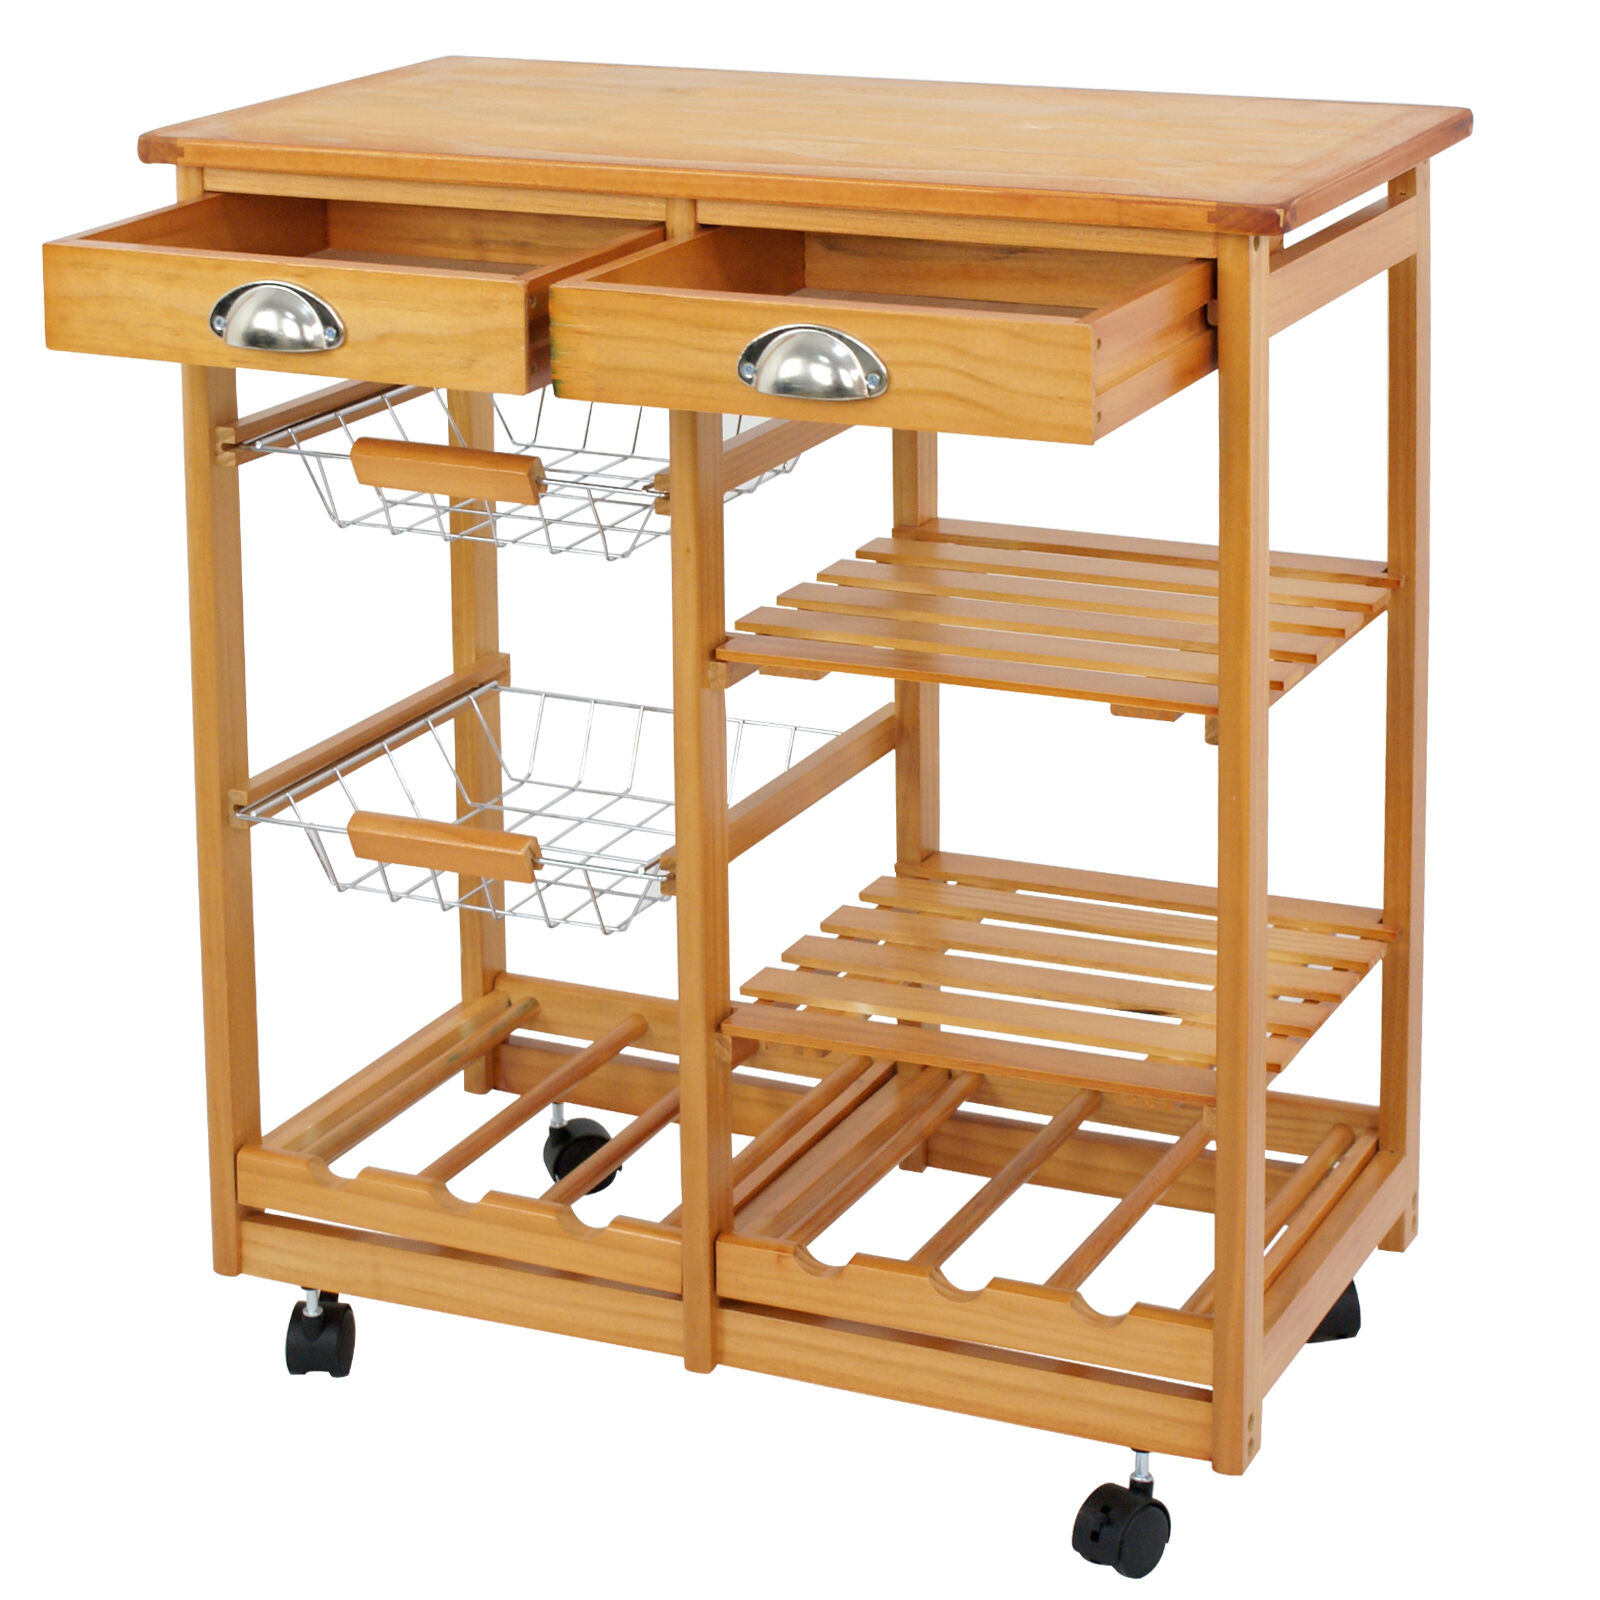 Dining Trolley Cart Rolling Wood Kitchen Island Storage Drawers Stand Durable Home & Garden